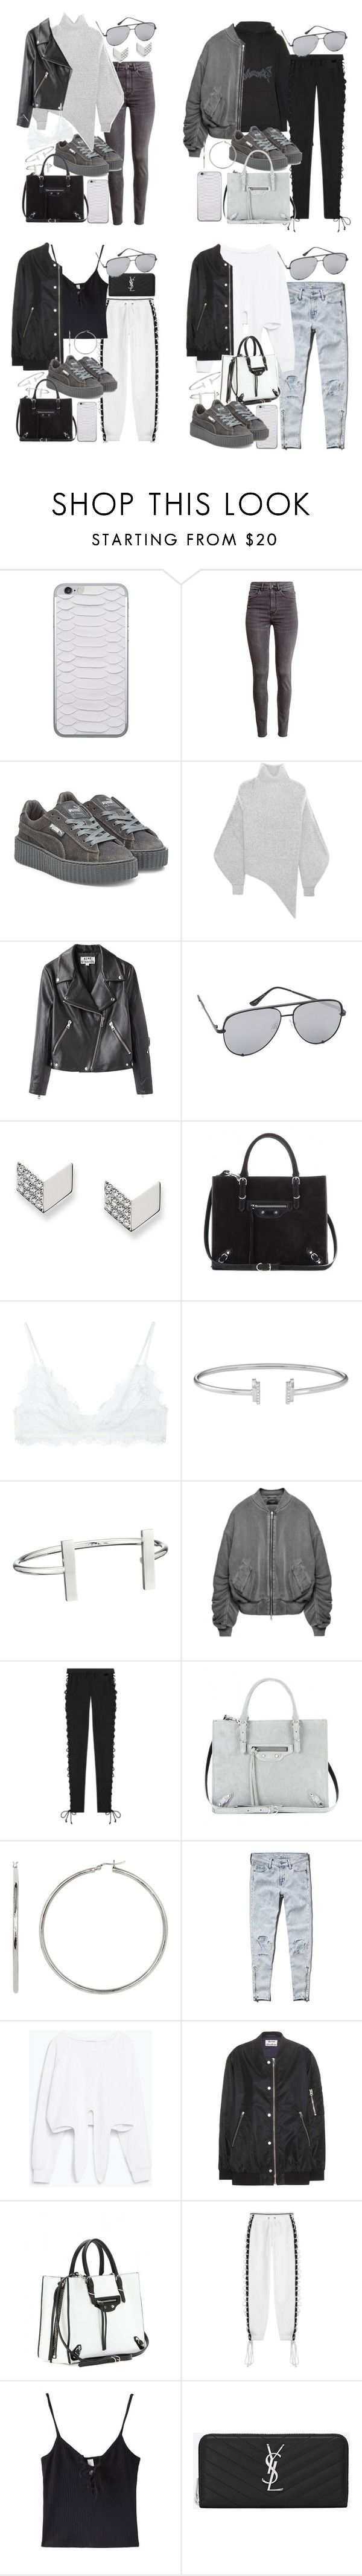 """""""how to style fenty velvet creepers"""" by florencia95 ❤ liked on Polyvore featuring Jamie Clawson, H&M, Puma, STELLA McCARTNEY, Acne Studios, Quay, FOSSIL, Balenciaga, Anine Bing and French Connection"""